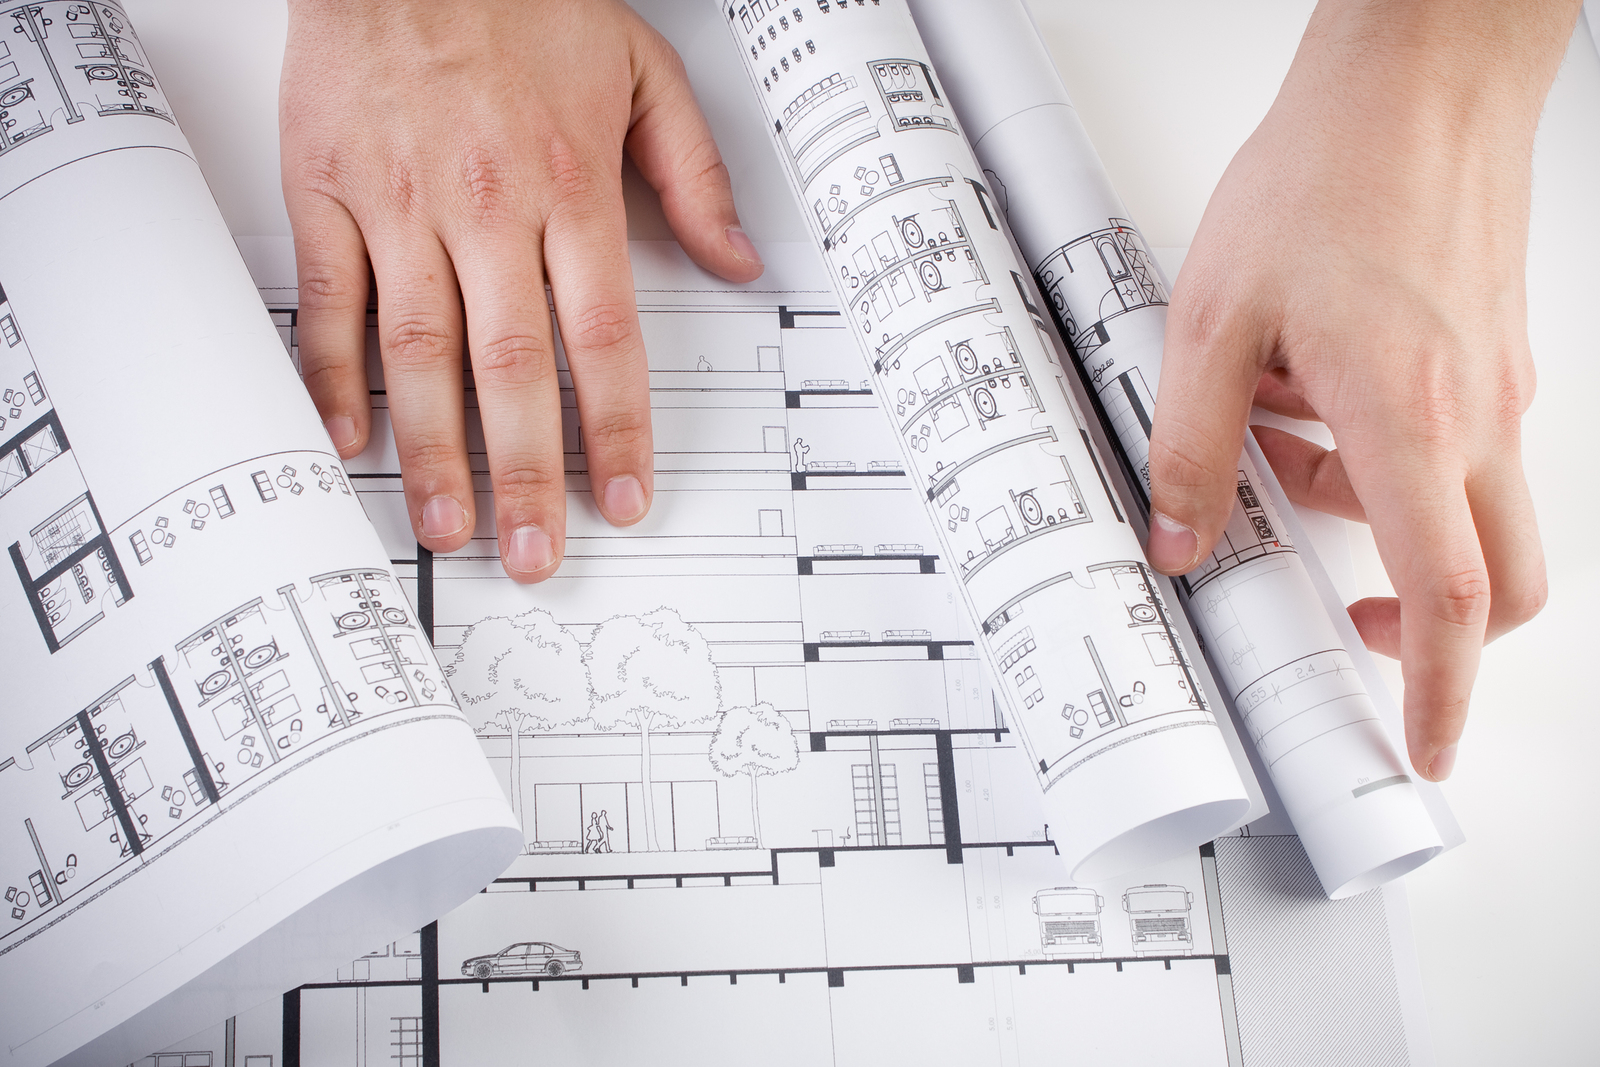 How to read plans and blueprints